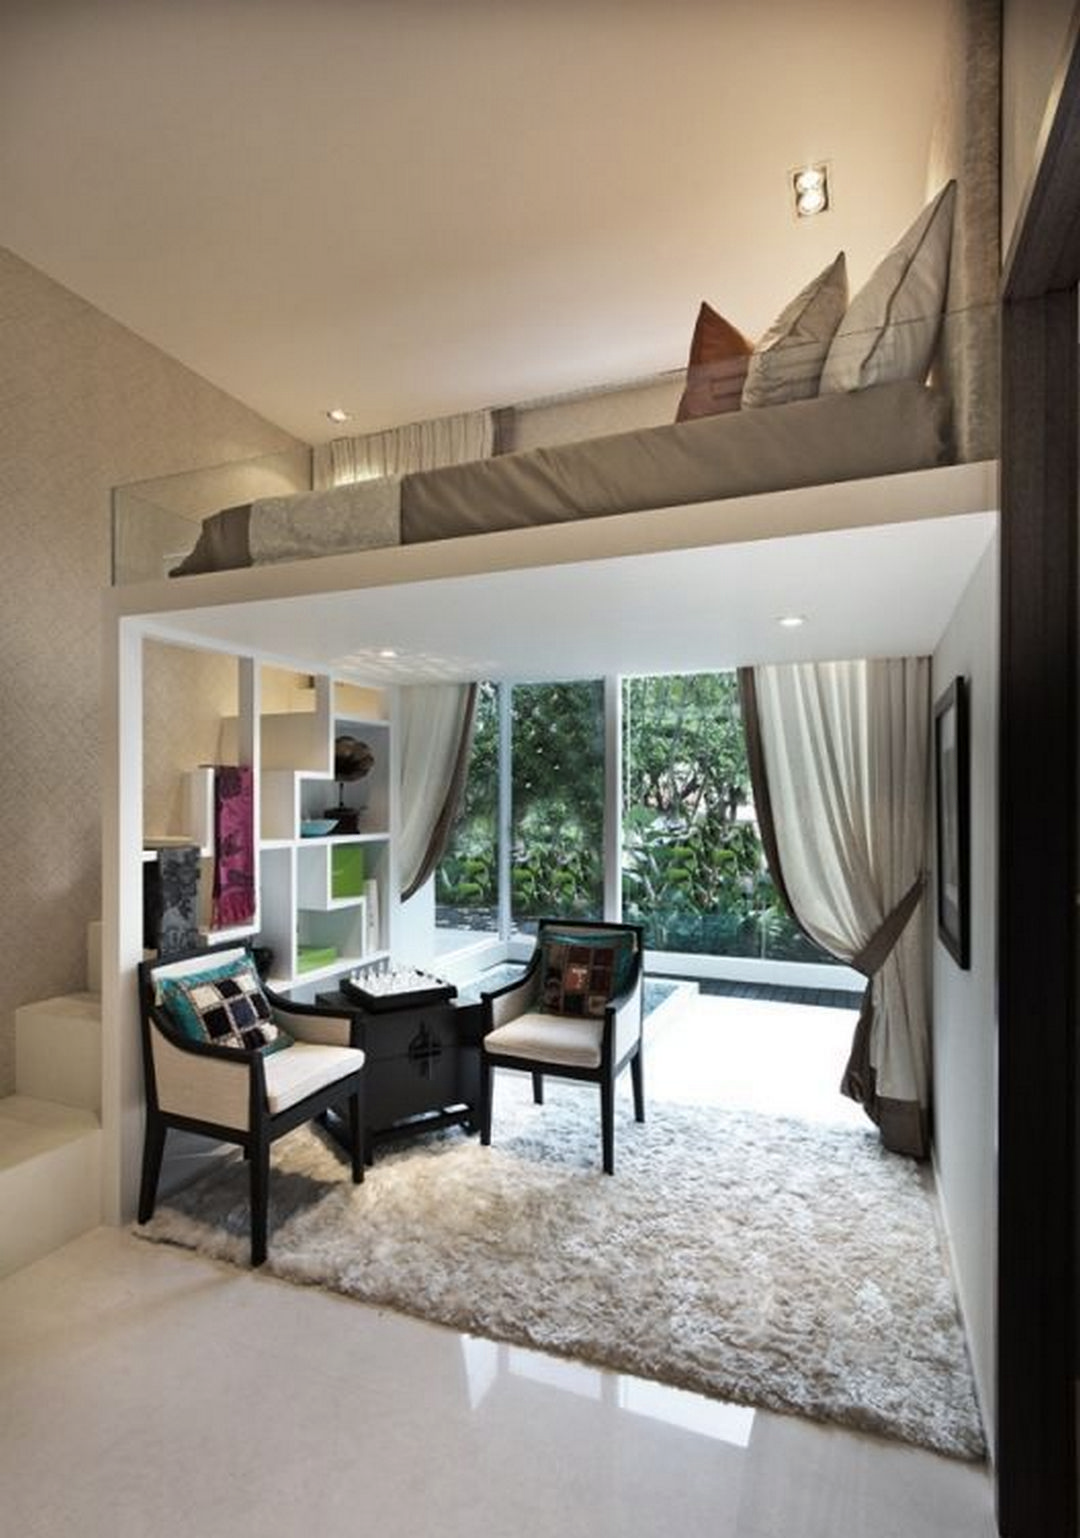 Bedroom Interior Design Ideas Small Spaces Amazing Cozy Small Bedroom Design Idea 34  Cozy Small Bedrooms Small Review